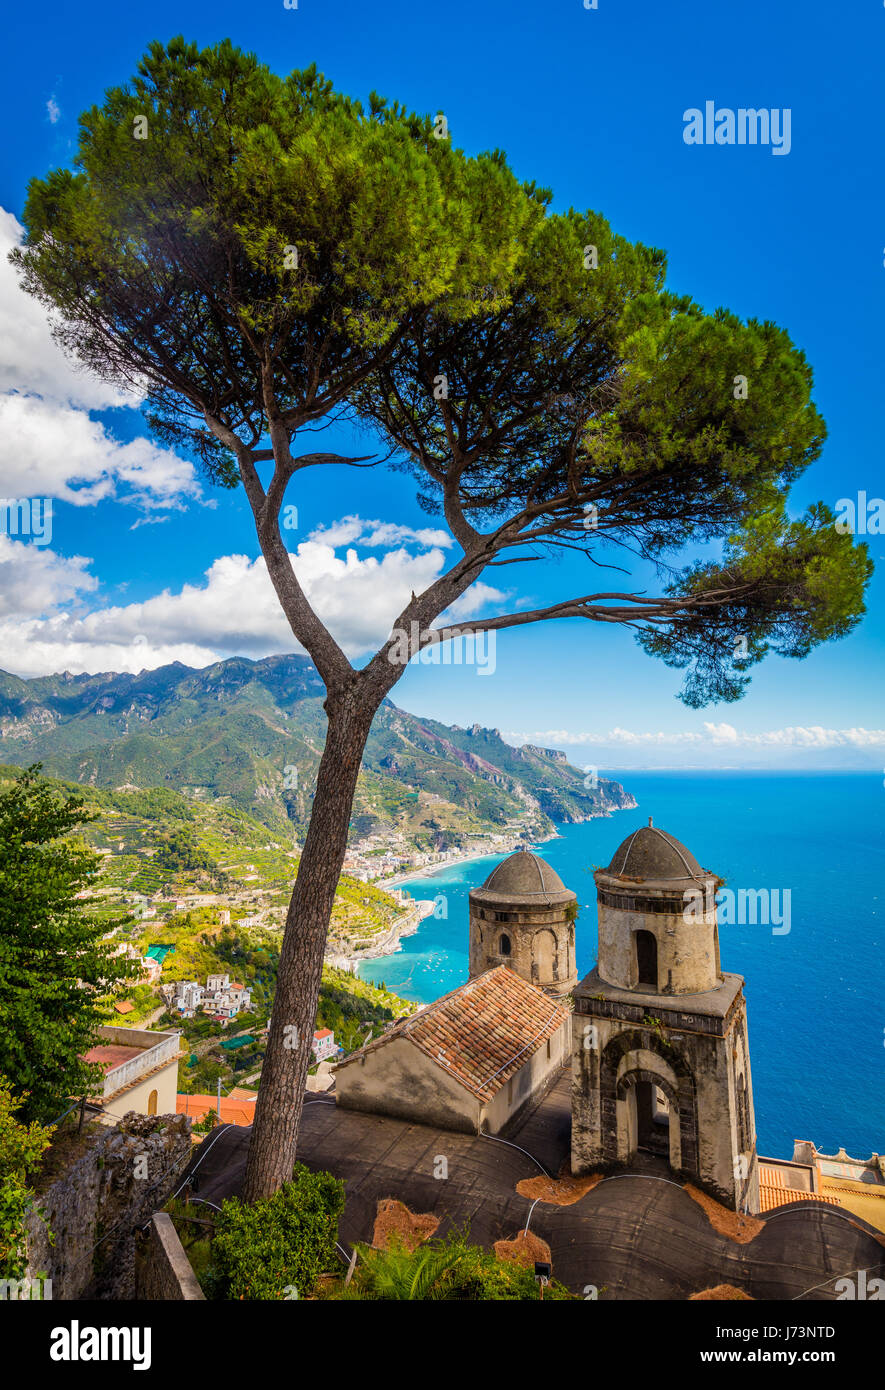 Villa Rufolo is a building within the historic center of Ravello, a town in the province of Salerno, Italy. - Stock Image